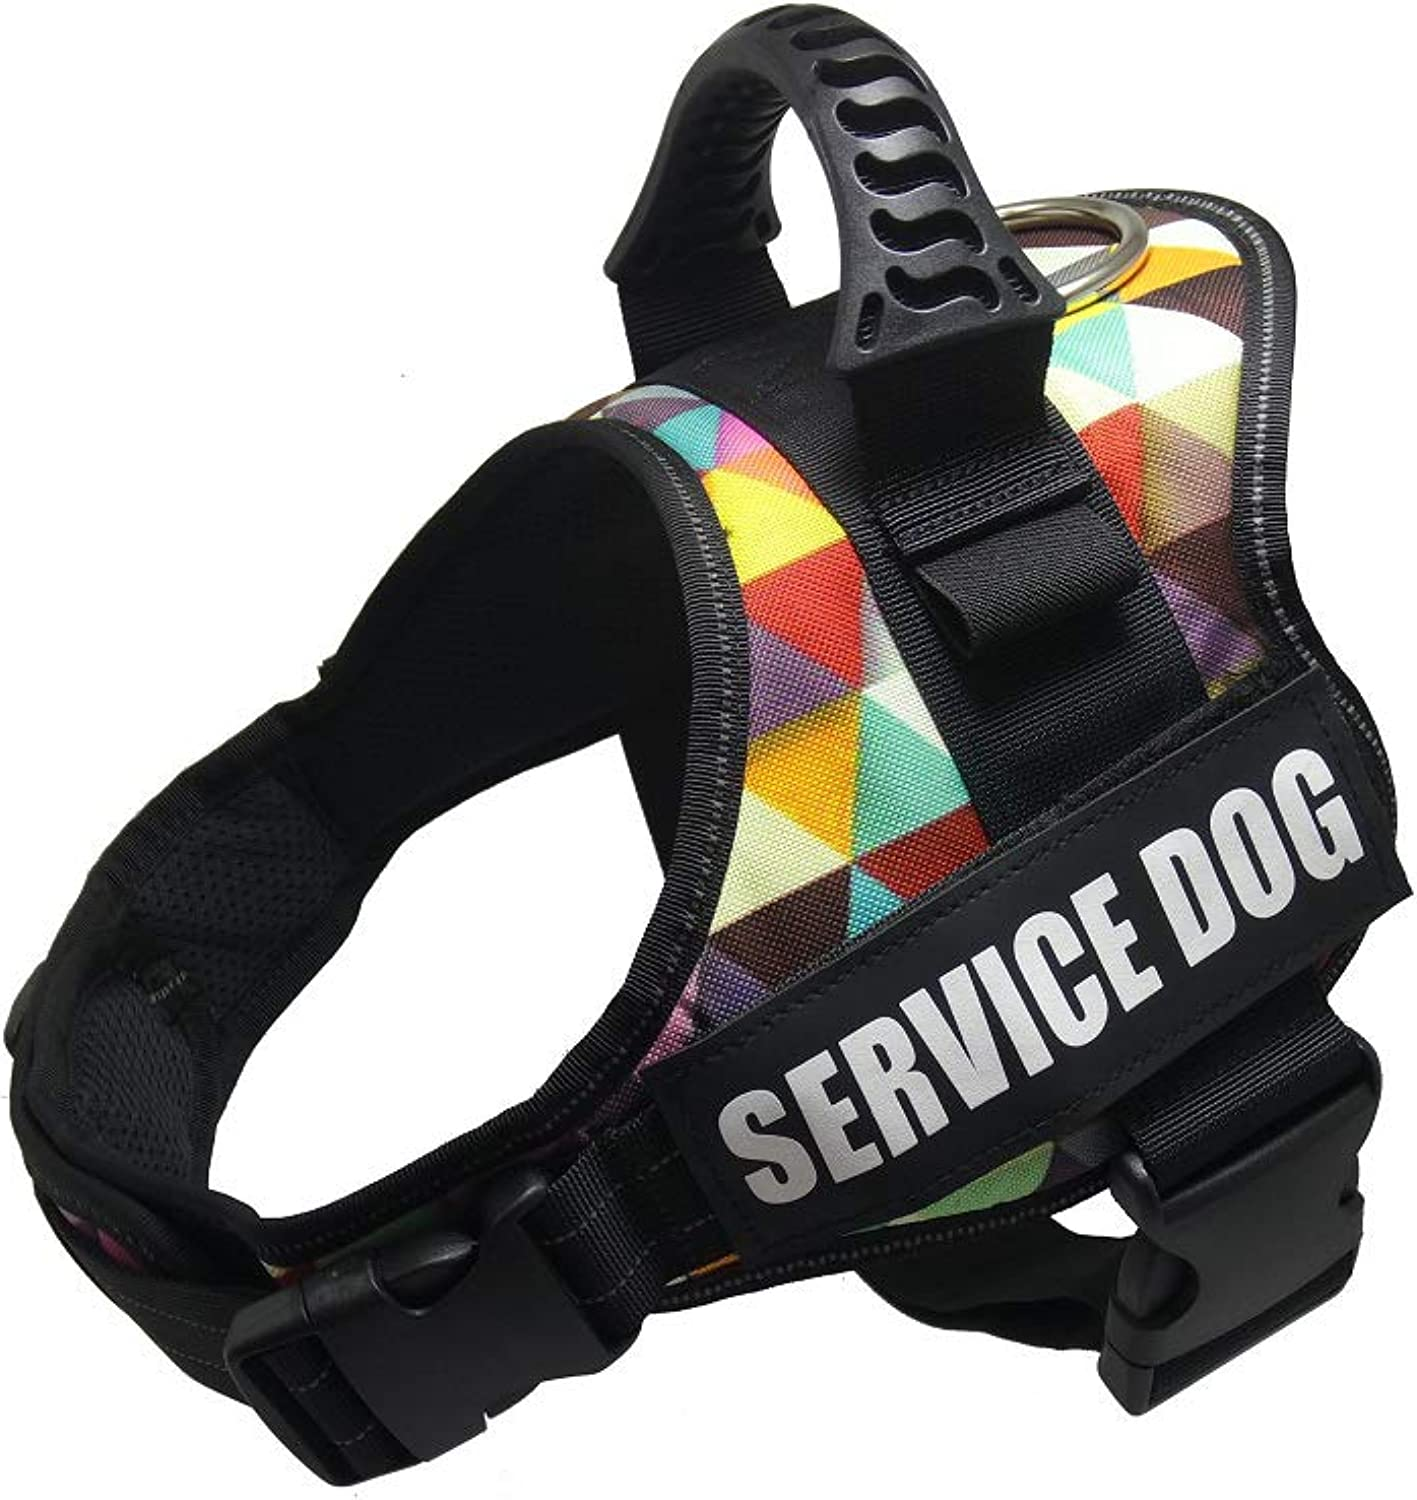 Frorezxc Dog Harnesses for Large Dogs Supplies Vests Pet Products Factory Price for Dog All Pet Harness for Cats for Pet Dogs Collar show6 XXL